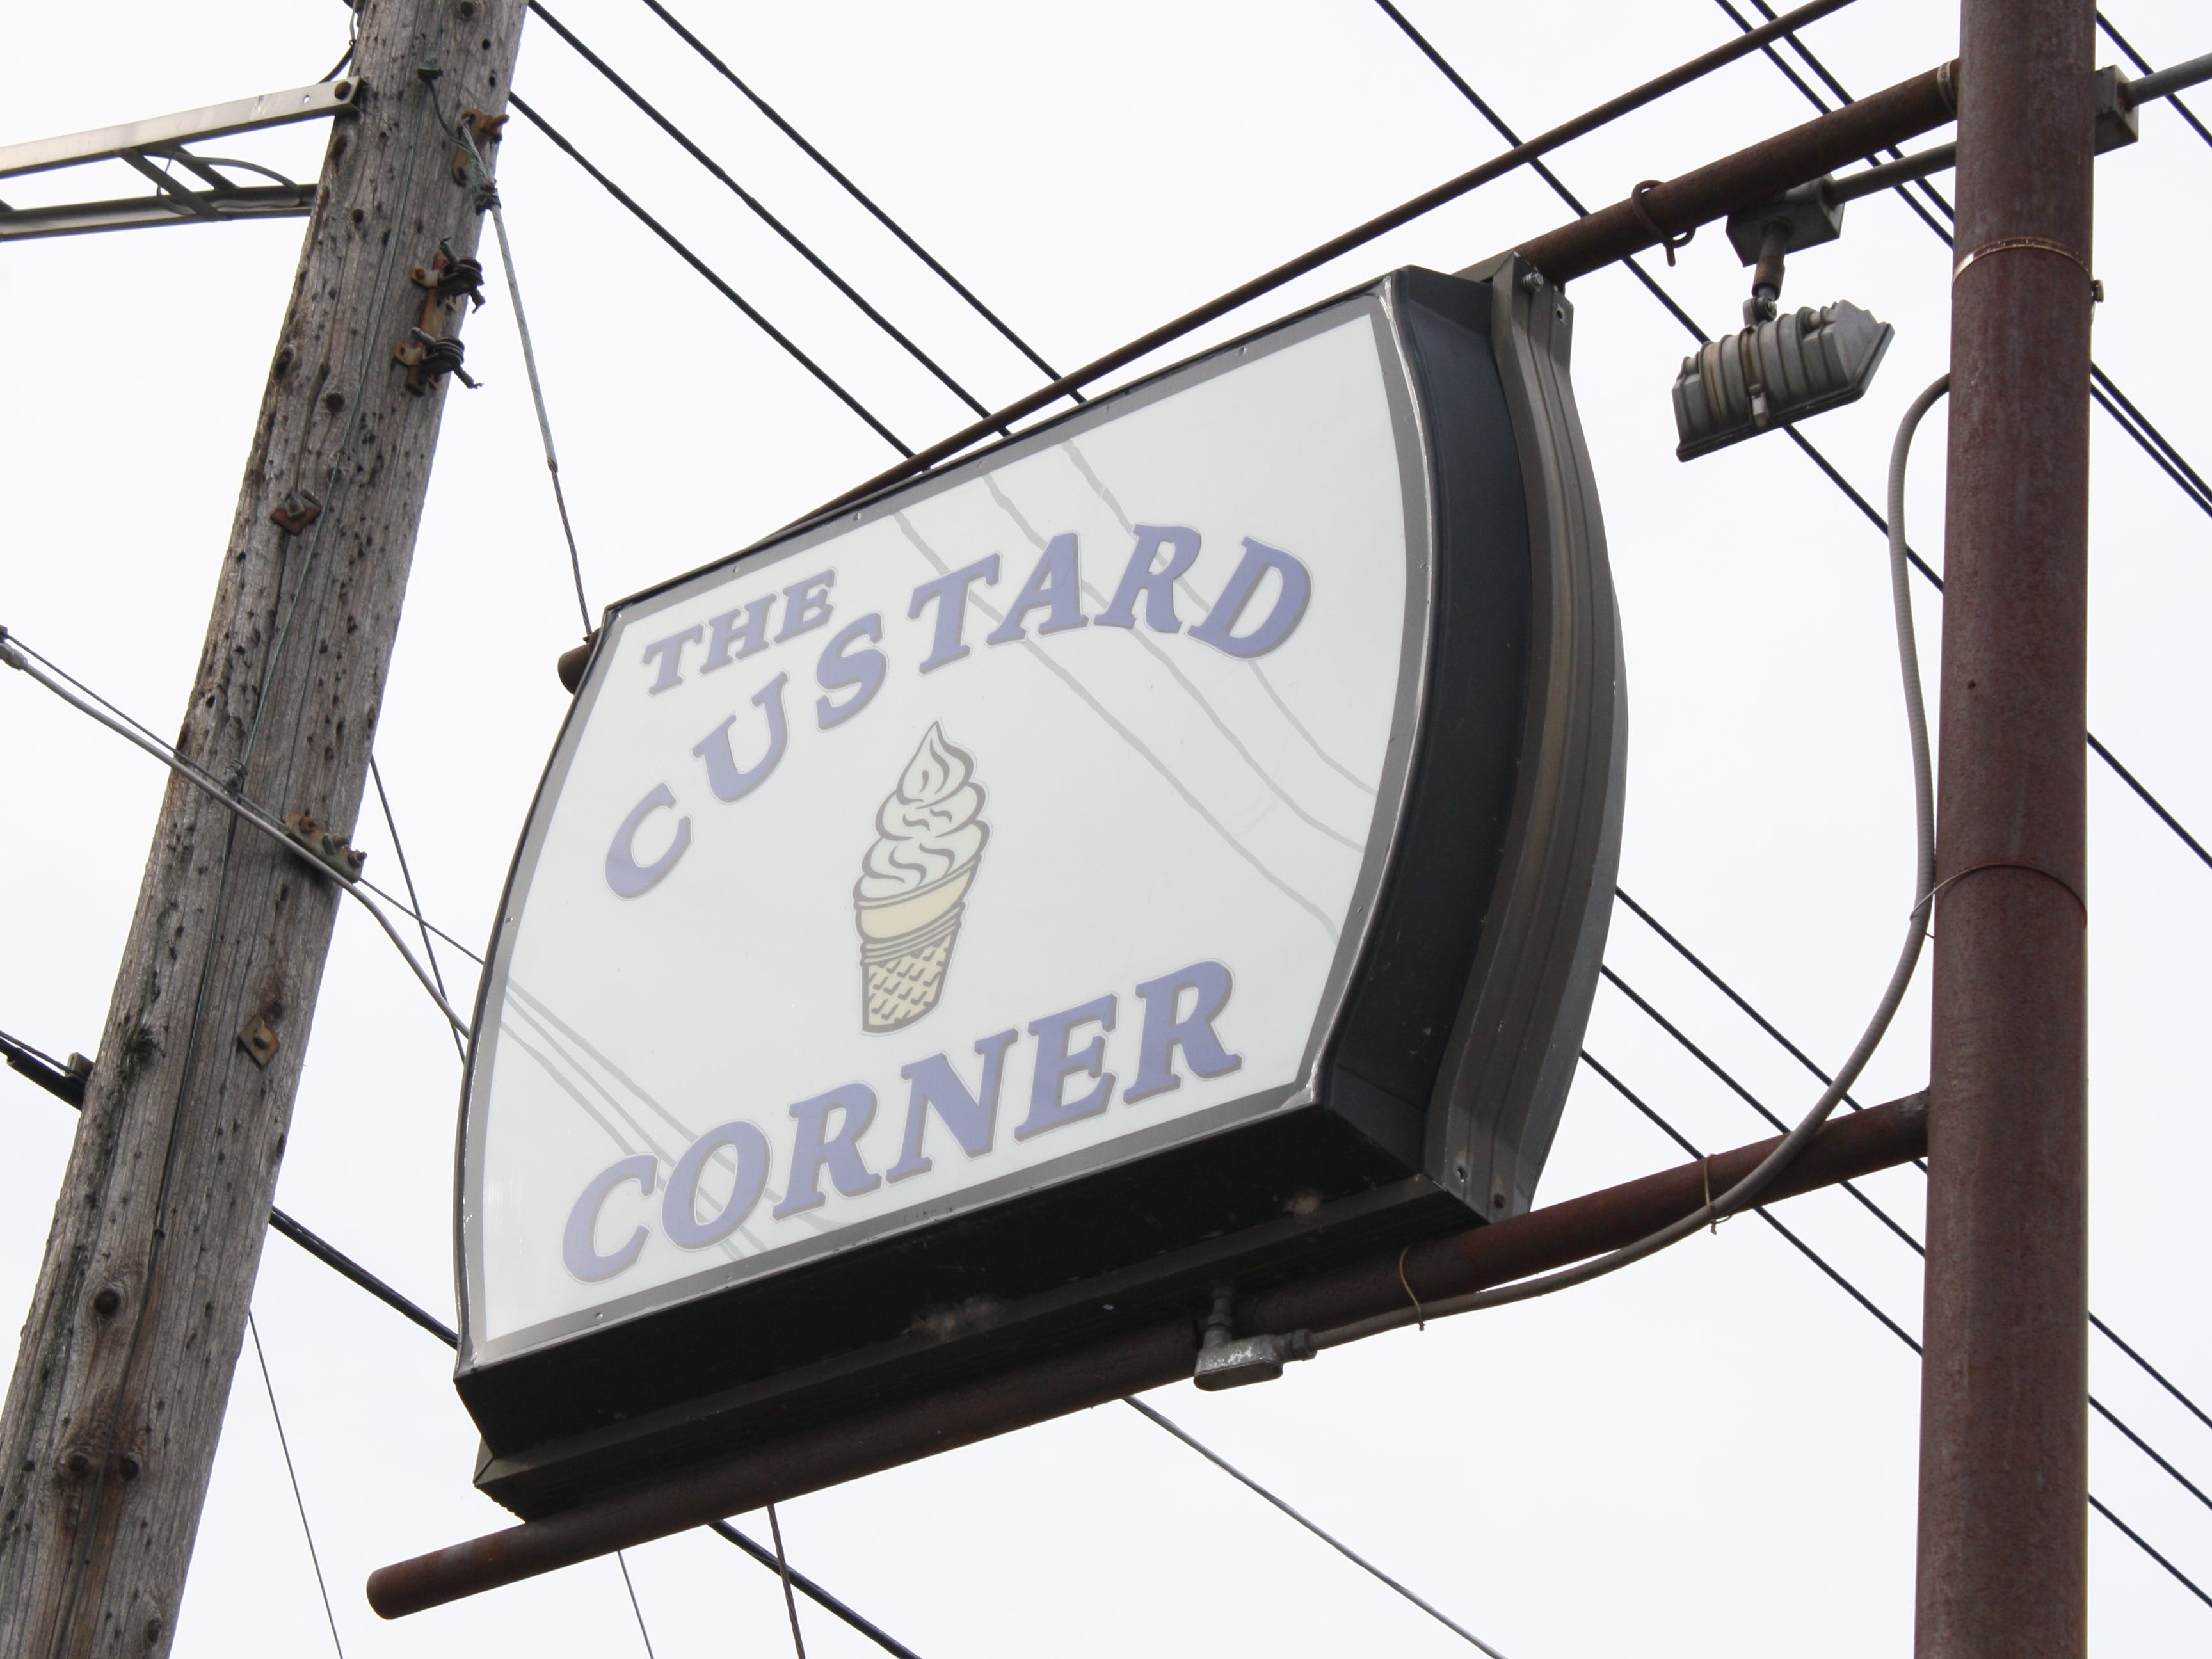 Fred Corl, 67, is closing The Custard Corner in Endicott on Sunday, Sept. 30 after 36 years. The business is currently for sale with a few interested buyers.